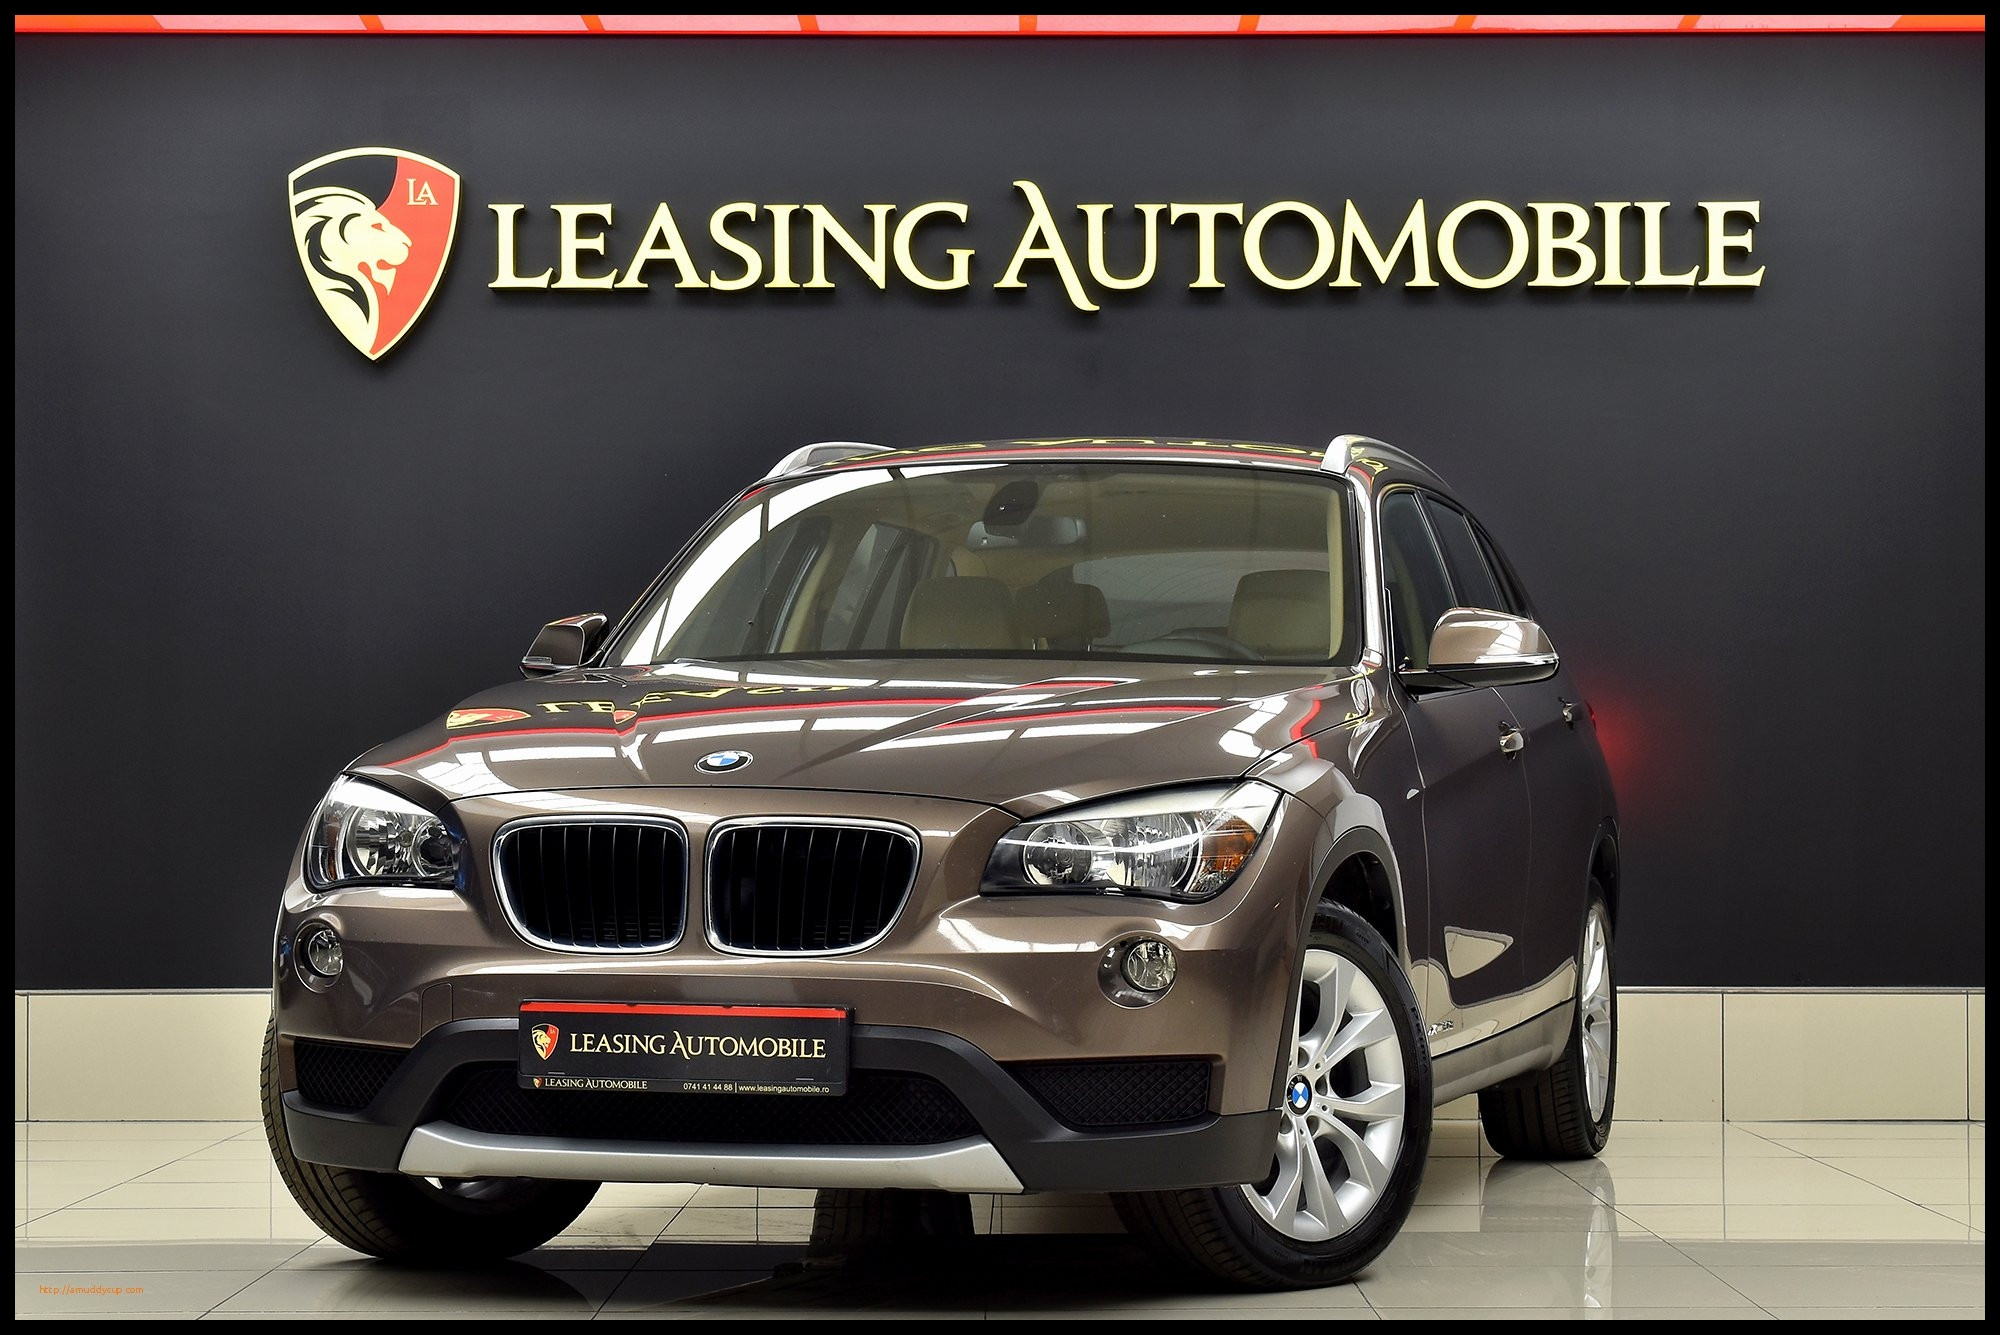 Bmw Los Angeles Lease Luxury Bmw Los Angeles Best Lease Bmw X1 Beautiful Auto Rulate Bmw